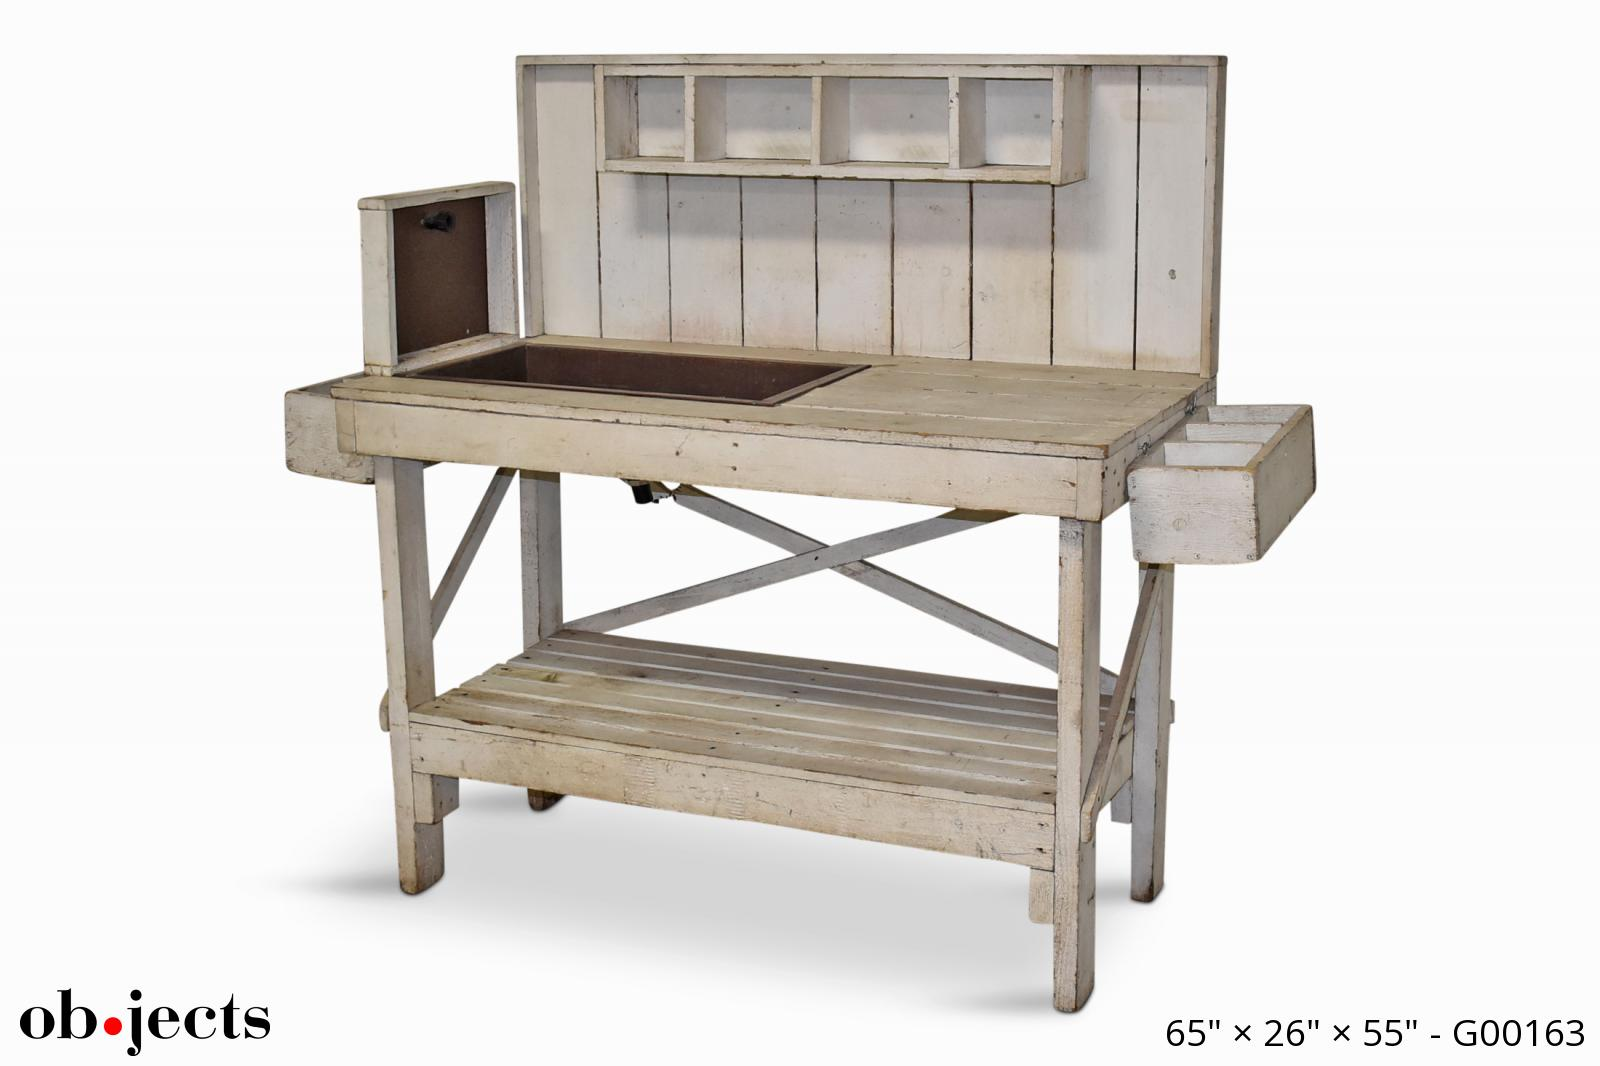 Lakewood 3 Person Swing, Potting Bench White Distressed W Copper Sink Ob Jects